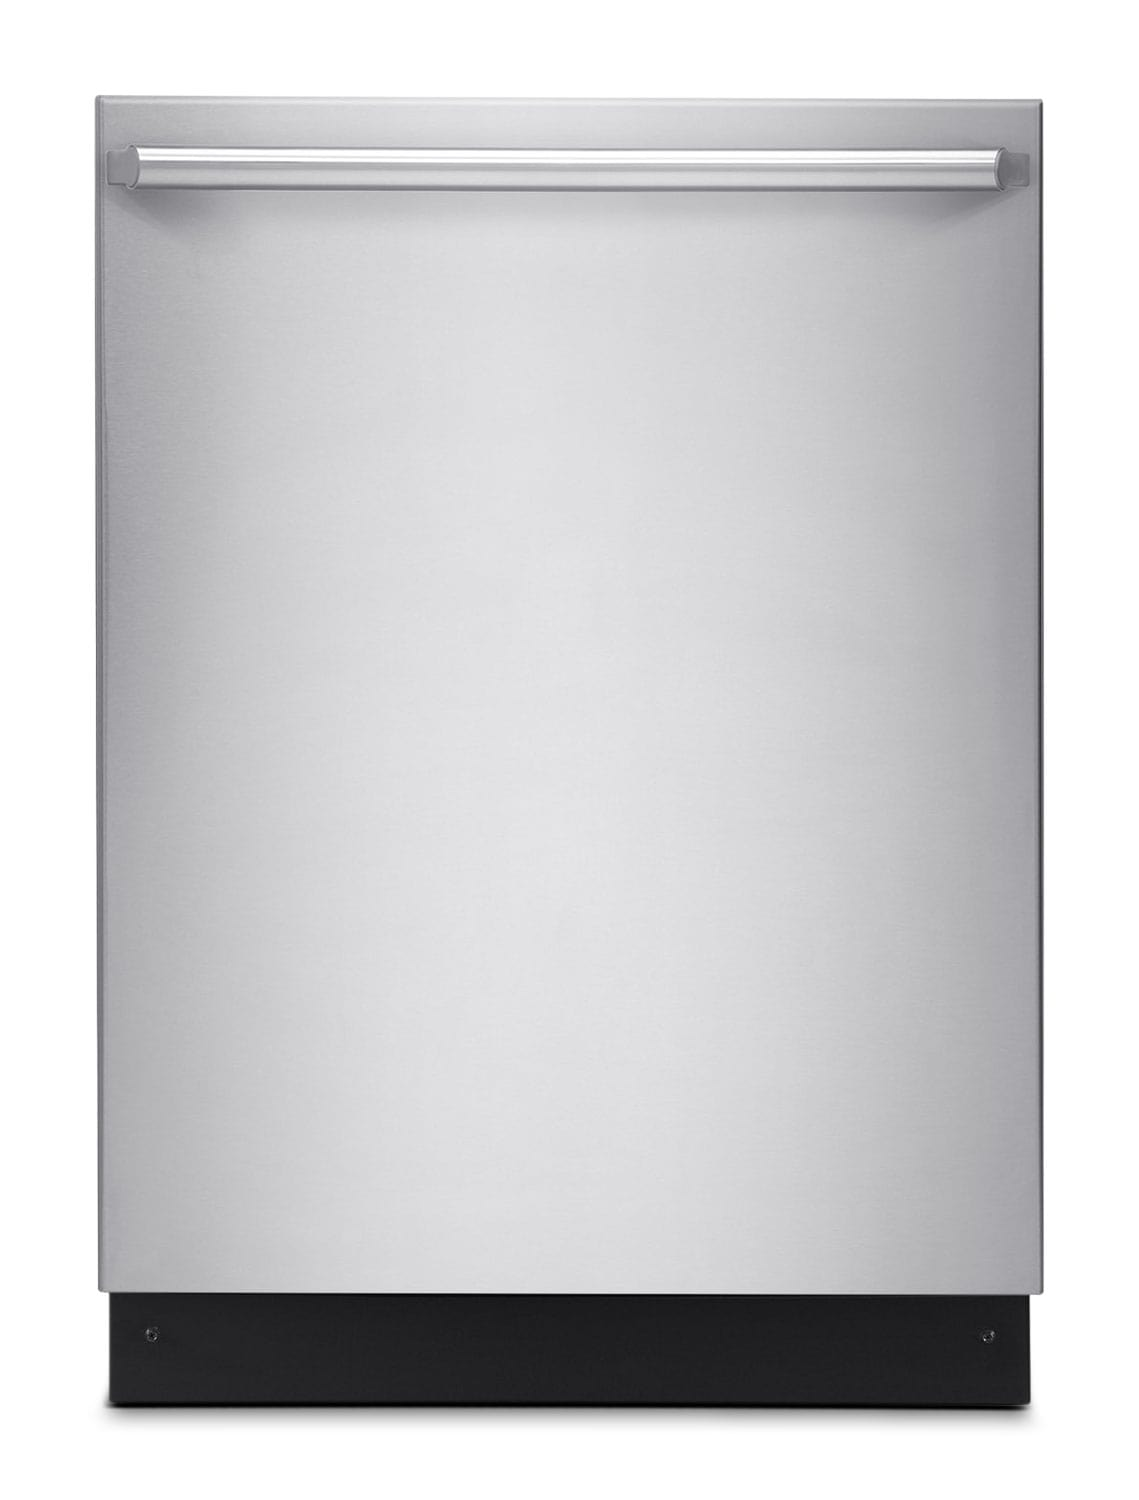 "Electrolux Stainless Steel 24"" Dishwasher - EI24ID30QS"